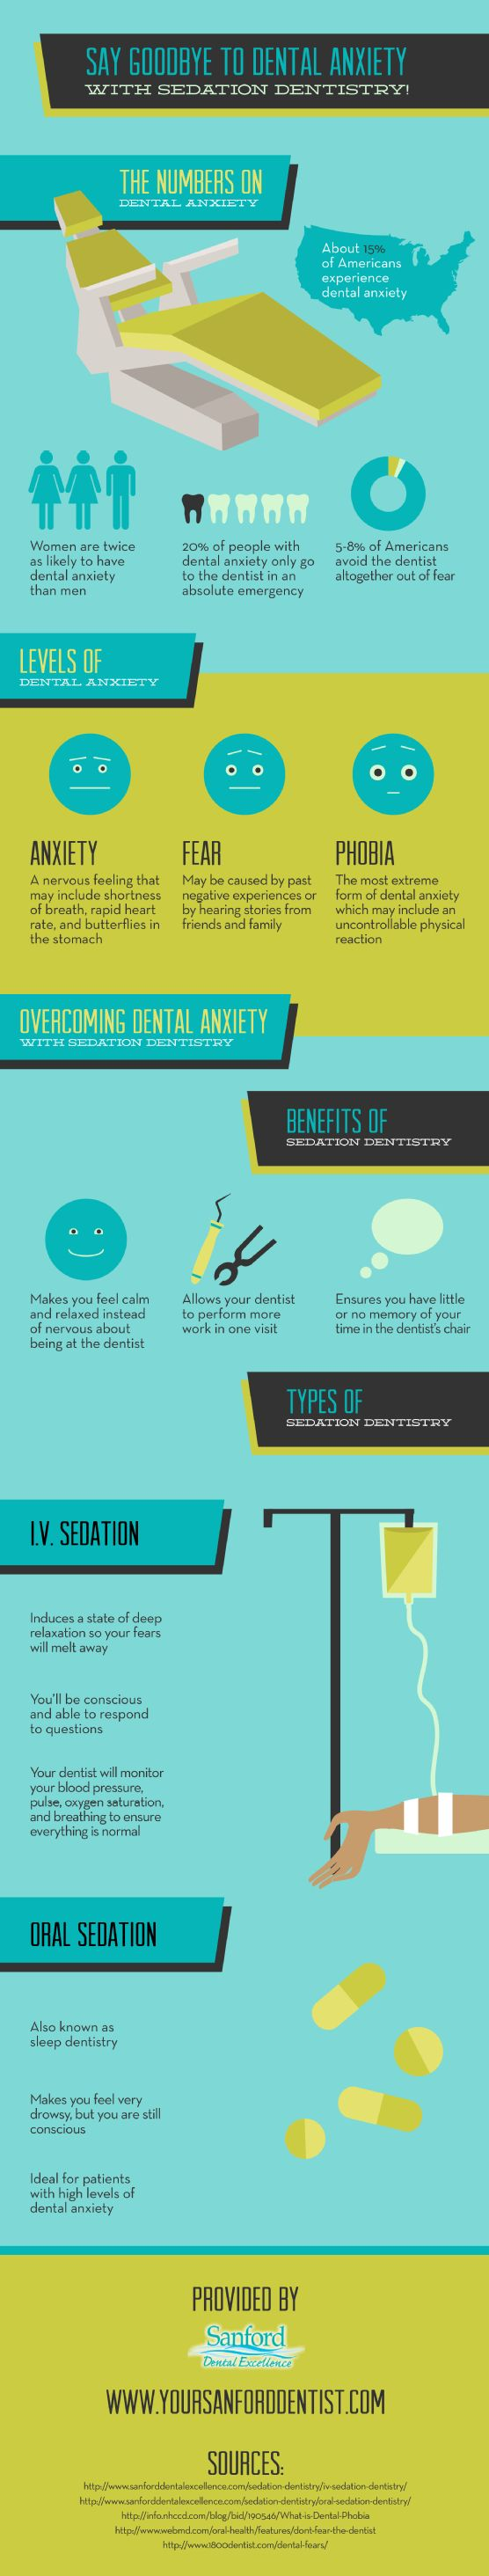 Say Goodbye To Dental Anxiety With Sedation Dentistry [INFOGRAPHIC] #dental #anxiety#sedationdentistry